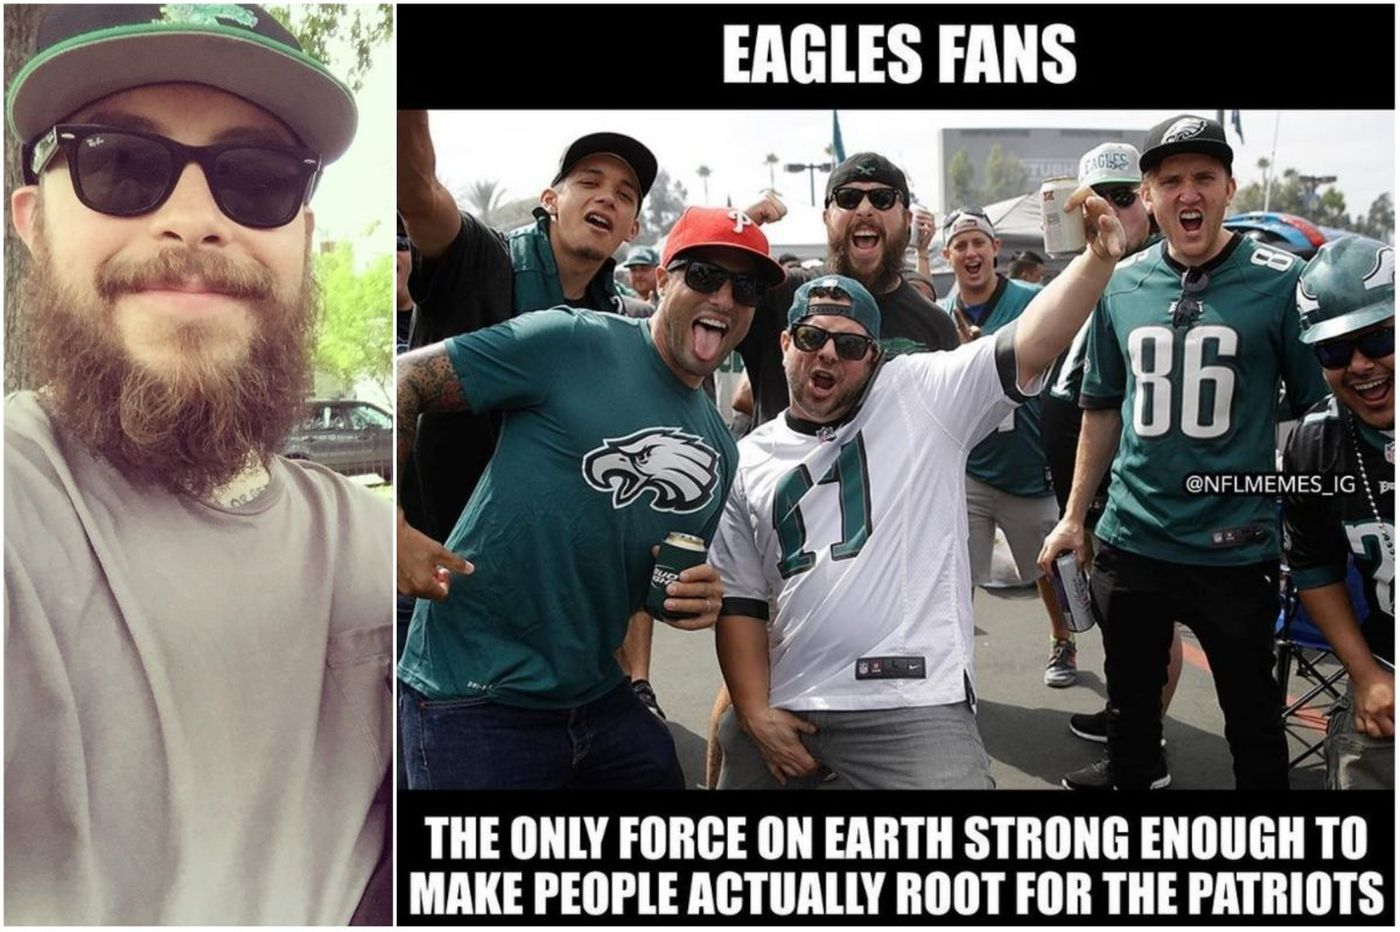 What it's like to be the subject of an anti-Eagles viral photo